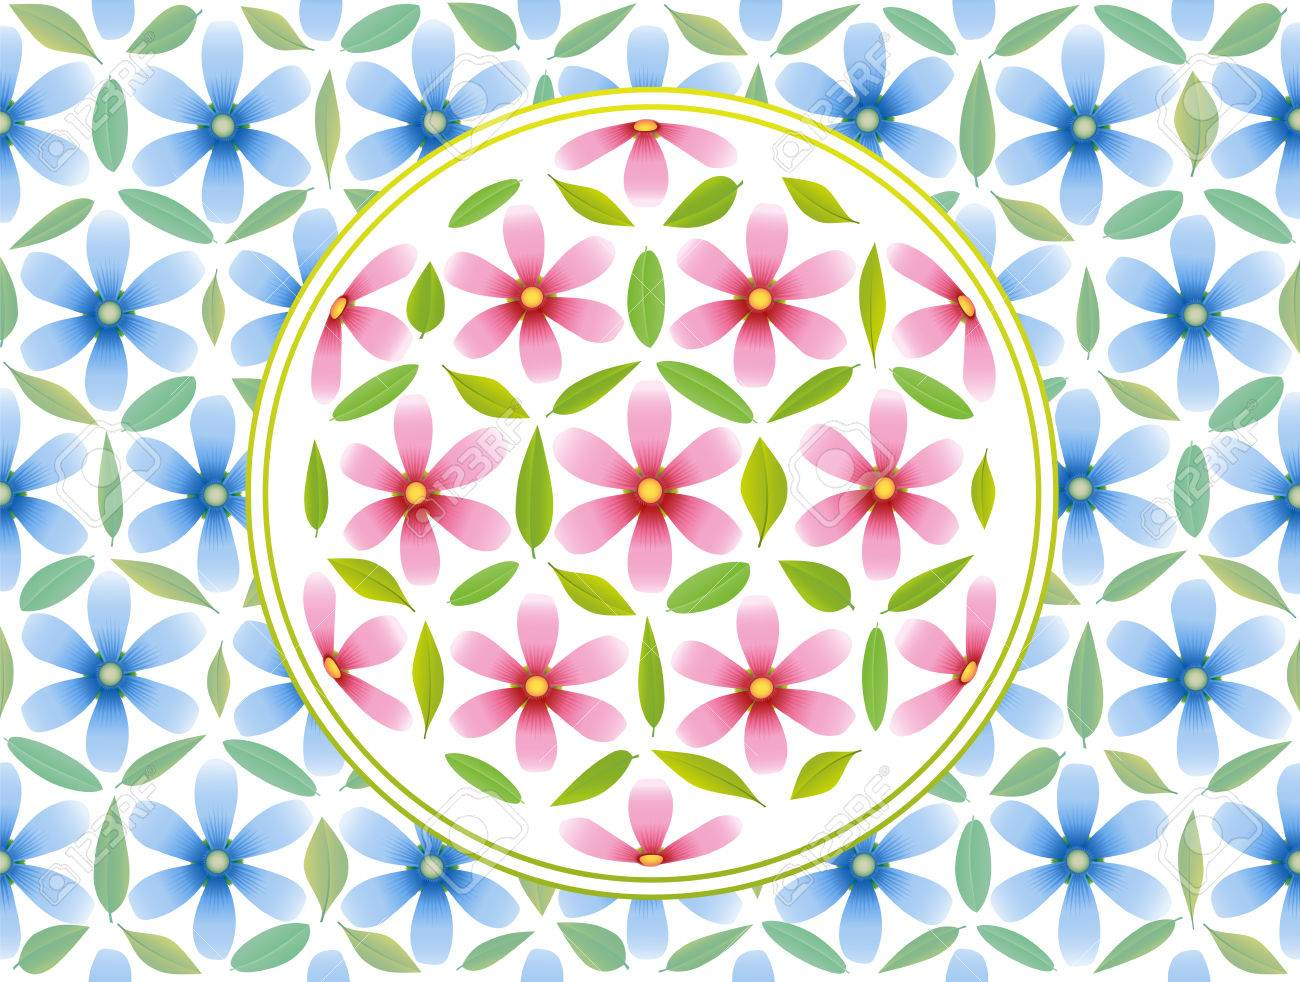 Flower Of Life Symbol Composed Of Pink Flowers And Green Leaves